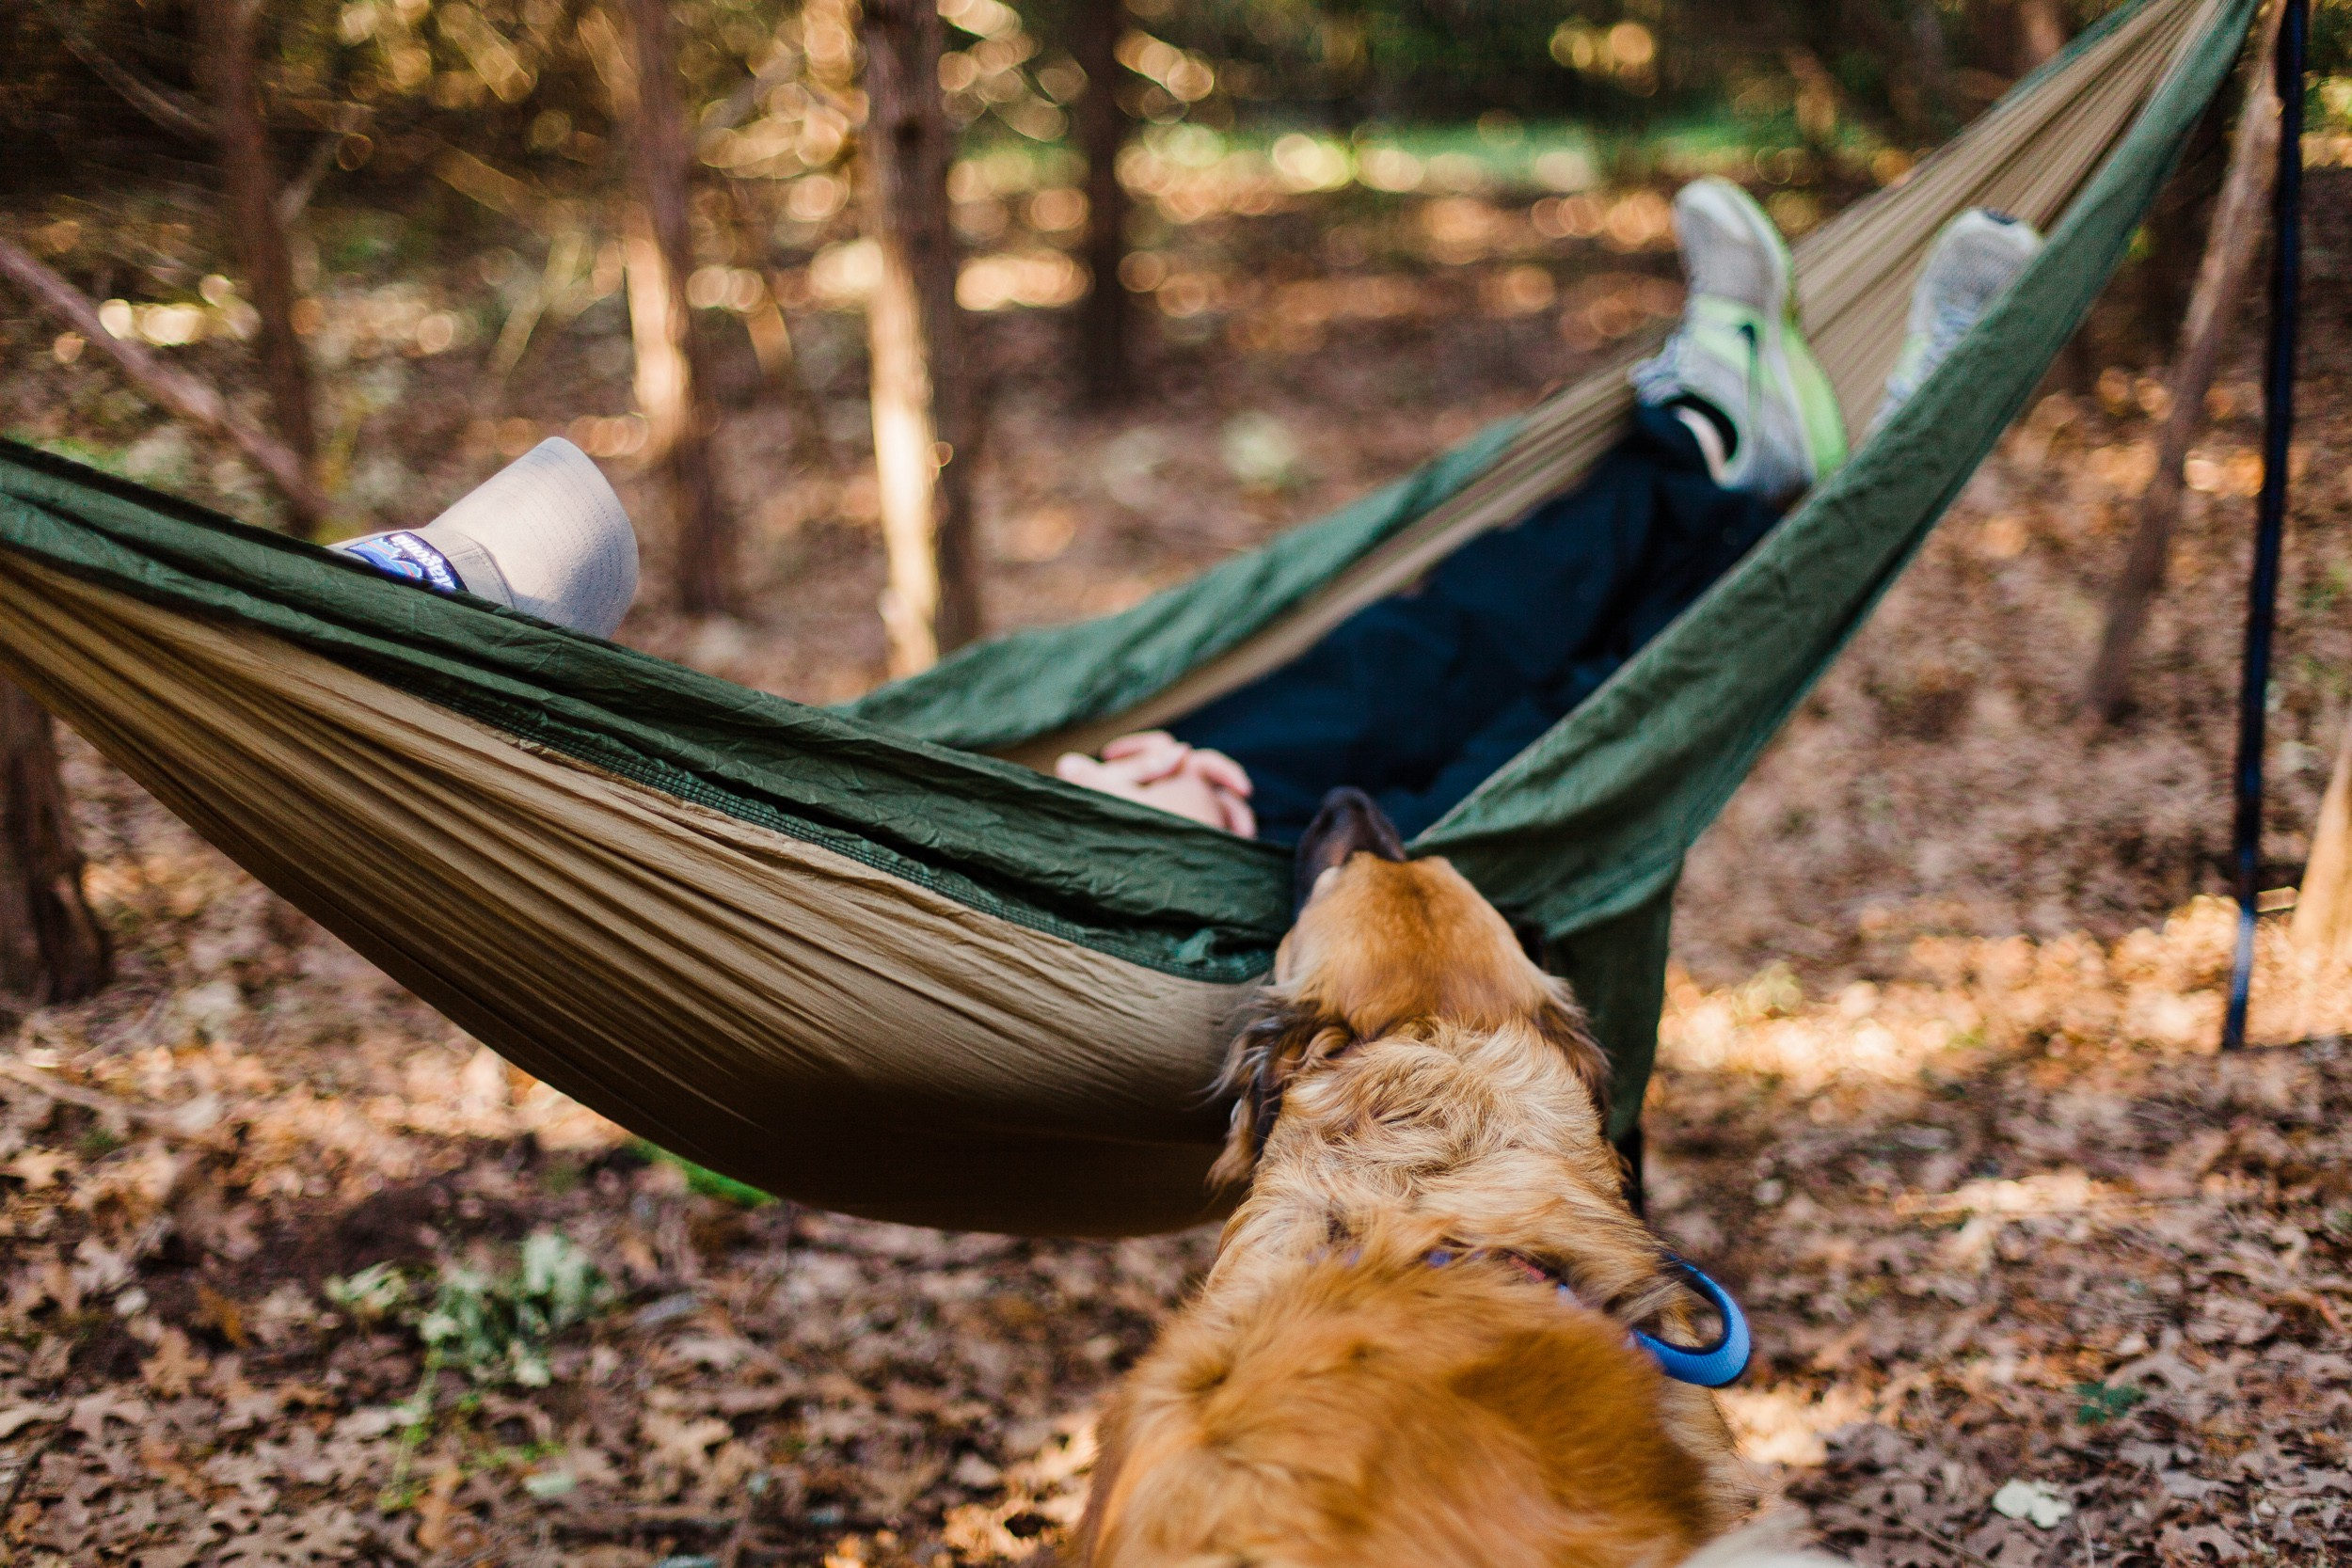 A person lays in a hammock in the forest with their golden retriever